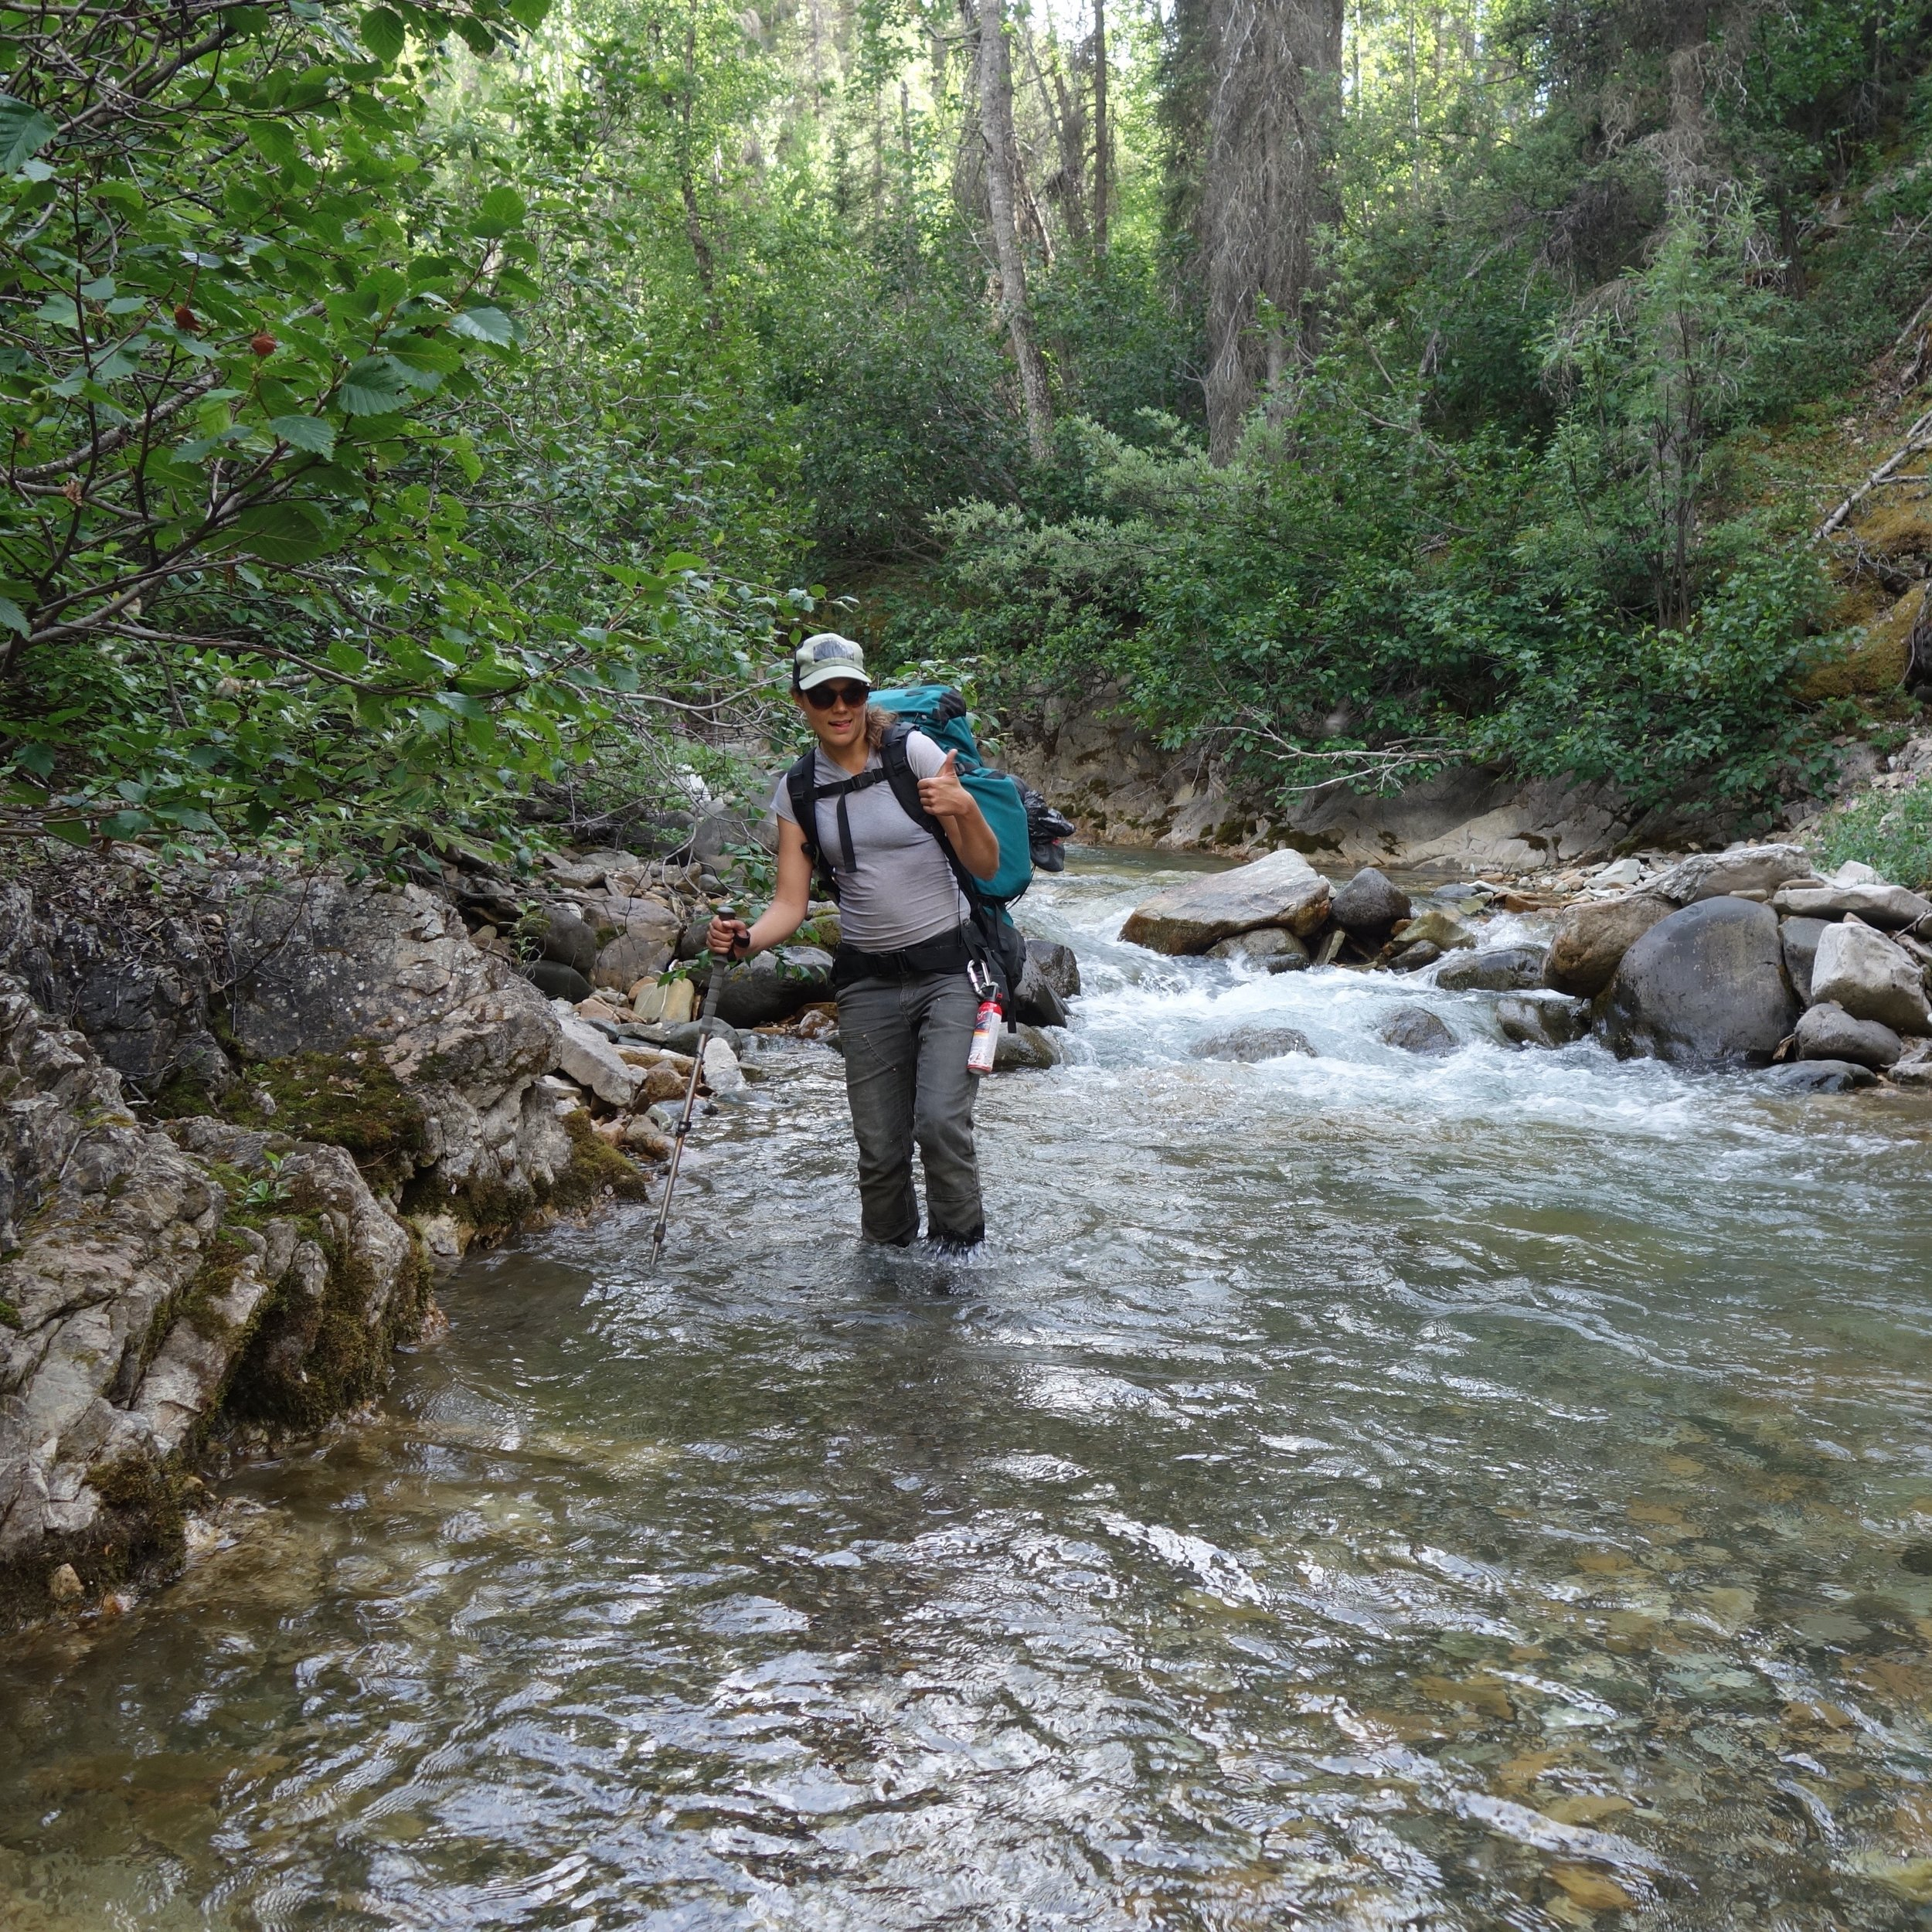 rebecca_stubbs_micranthes_backpacking_botanist